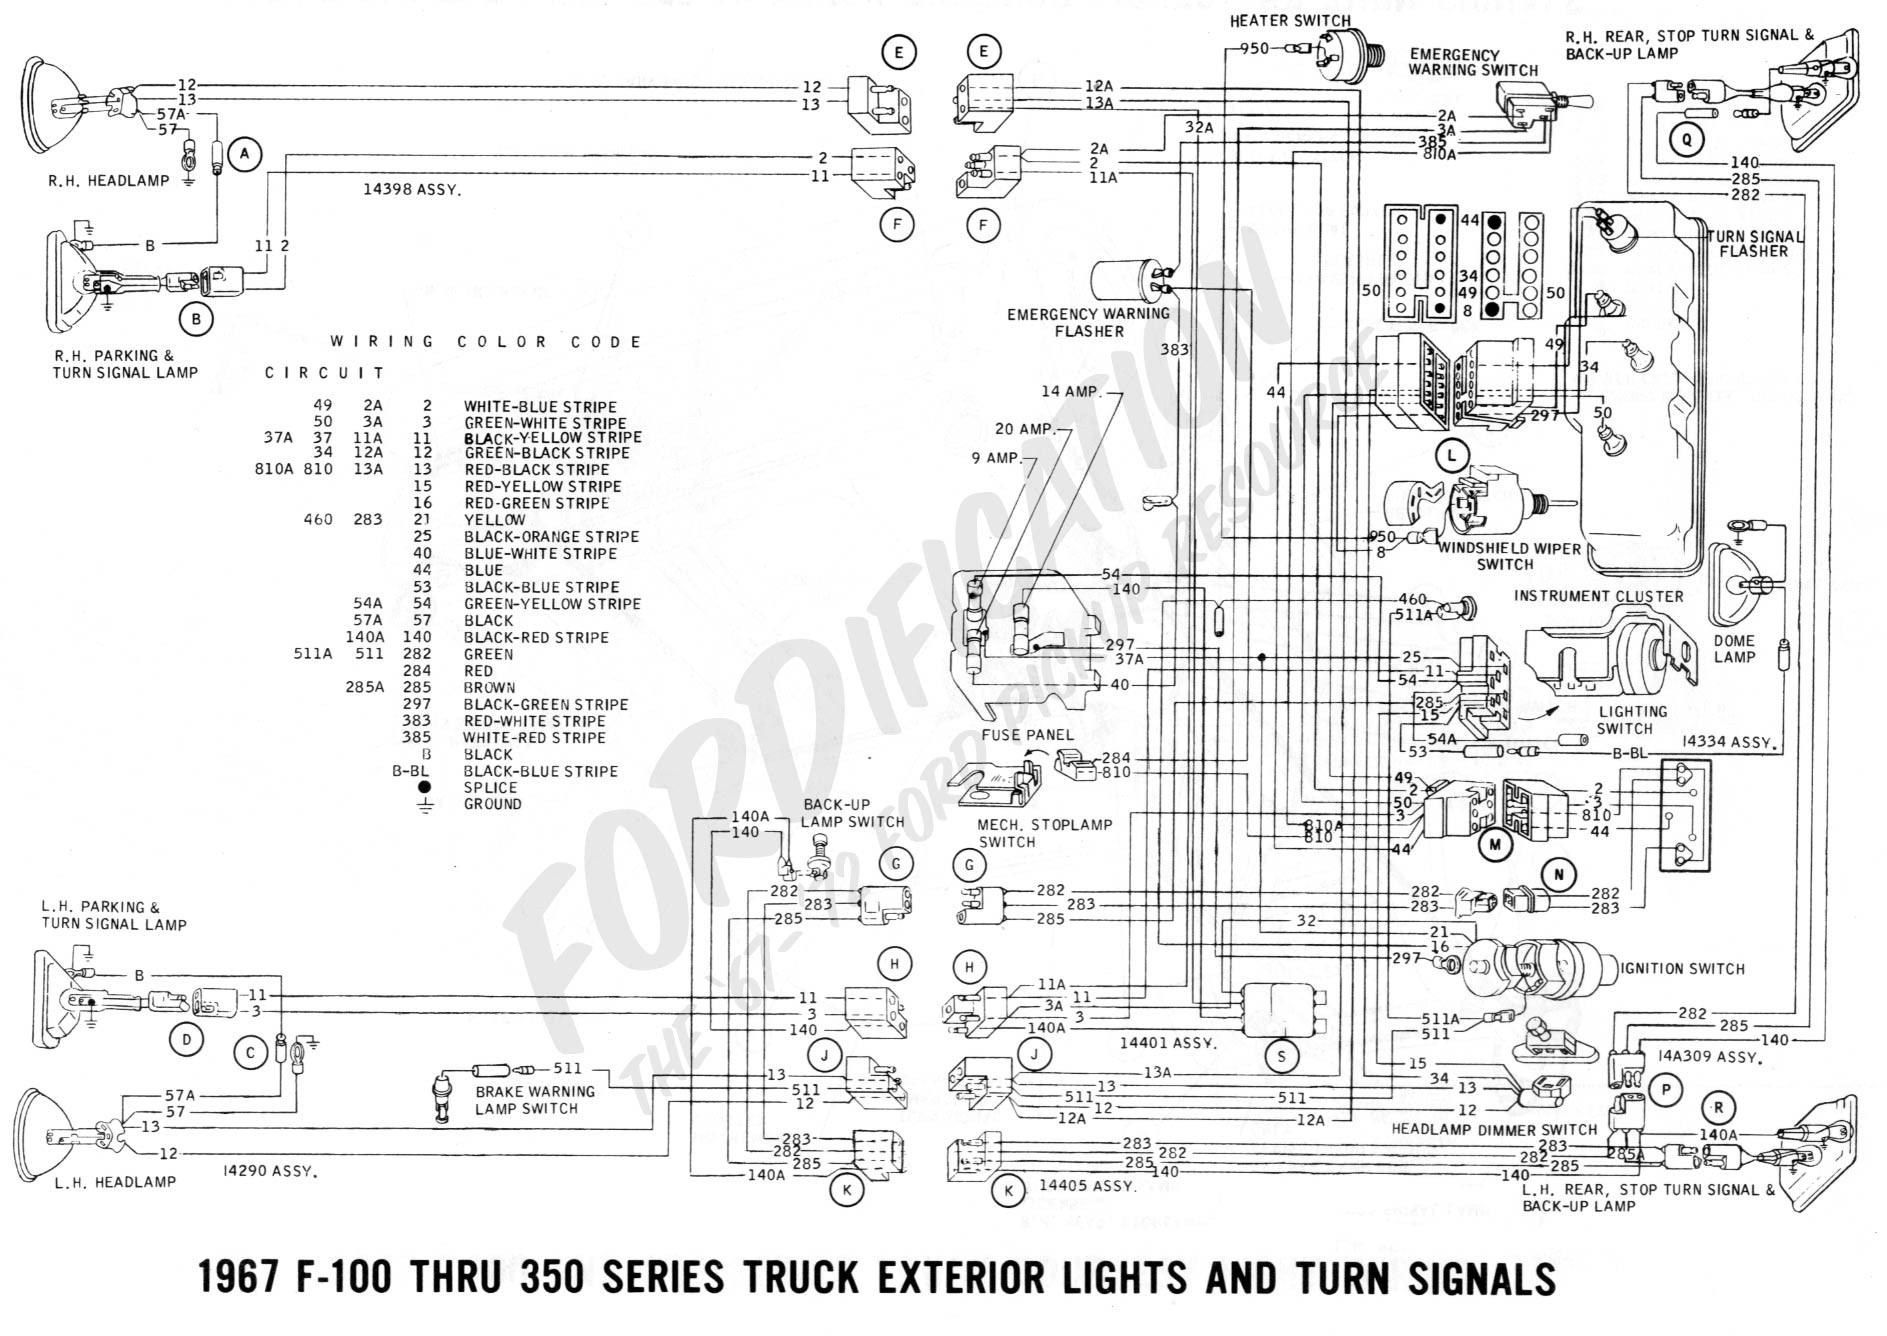 2000 ford F150 Wiring Diagram 1990 ford F 150 Fuel Pump